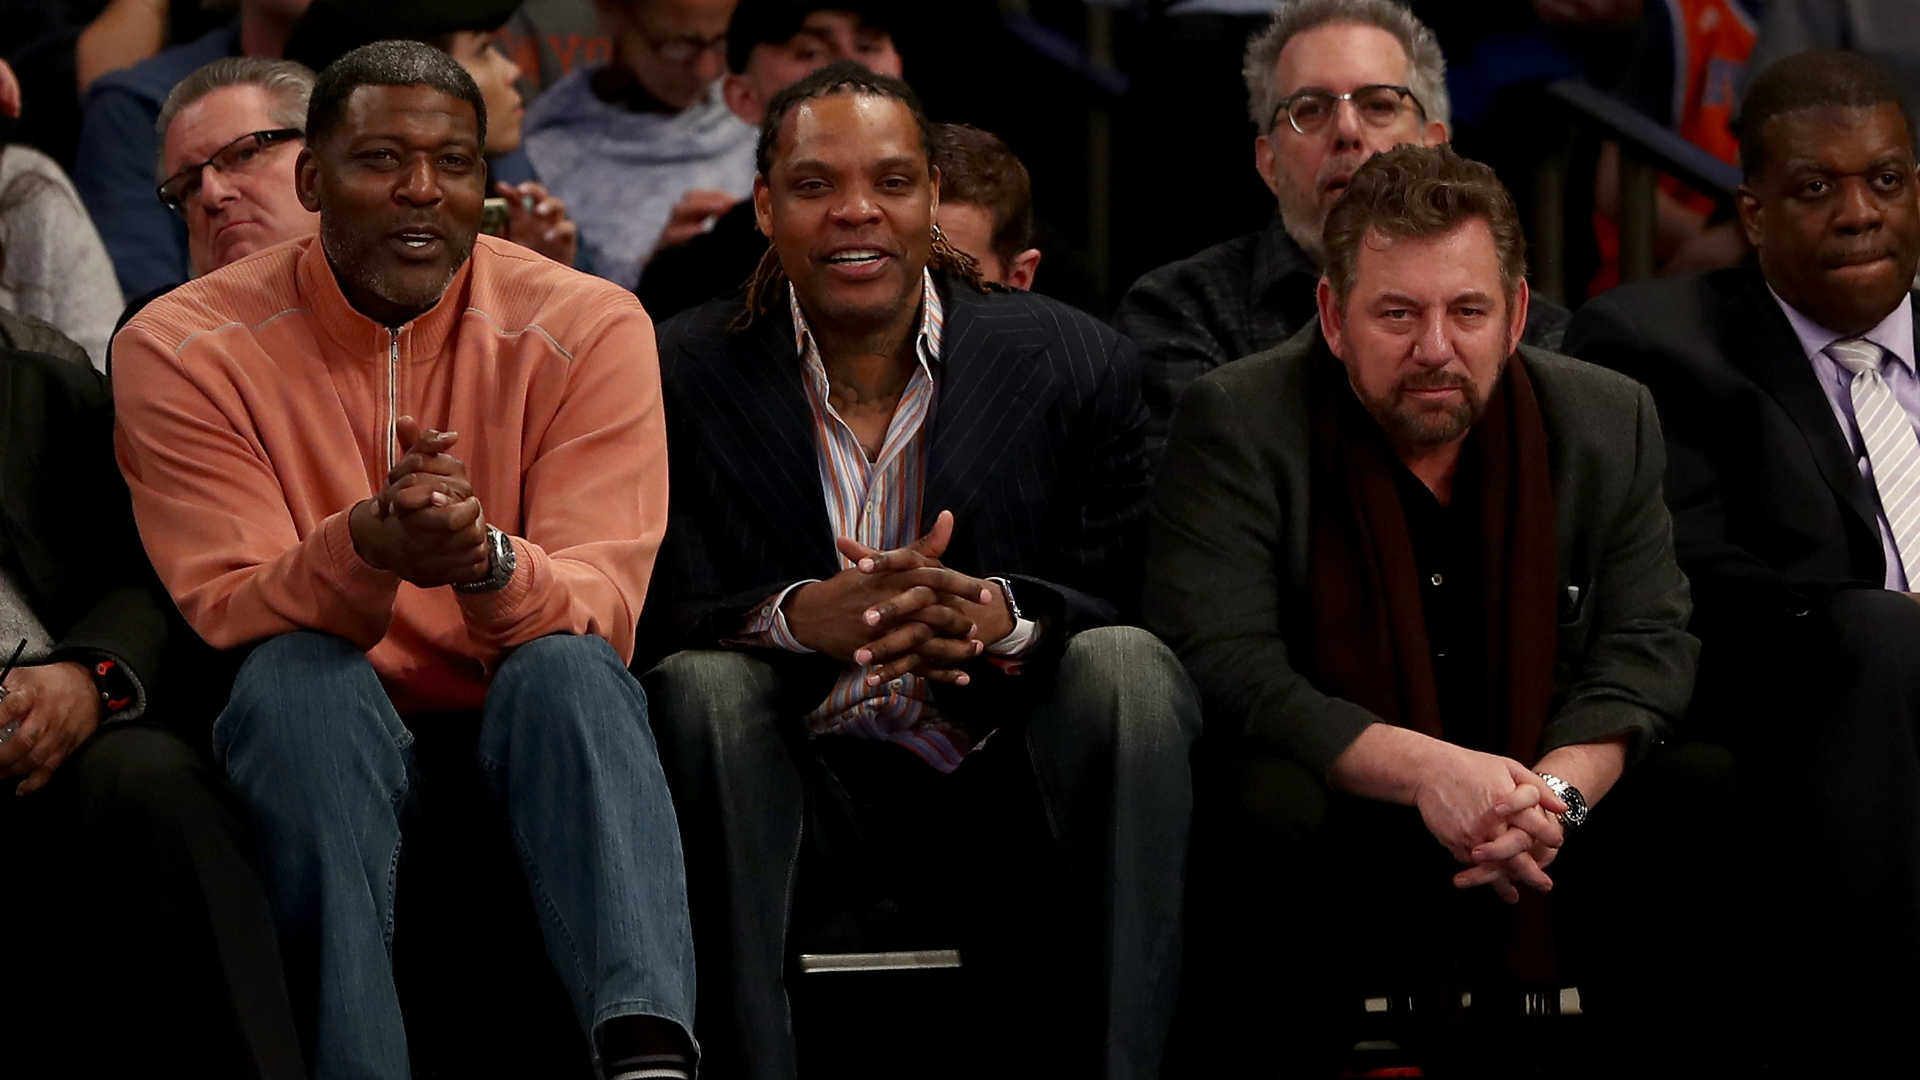 James Dolan 'courting offers' to sell Knicks, report says